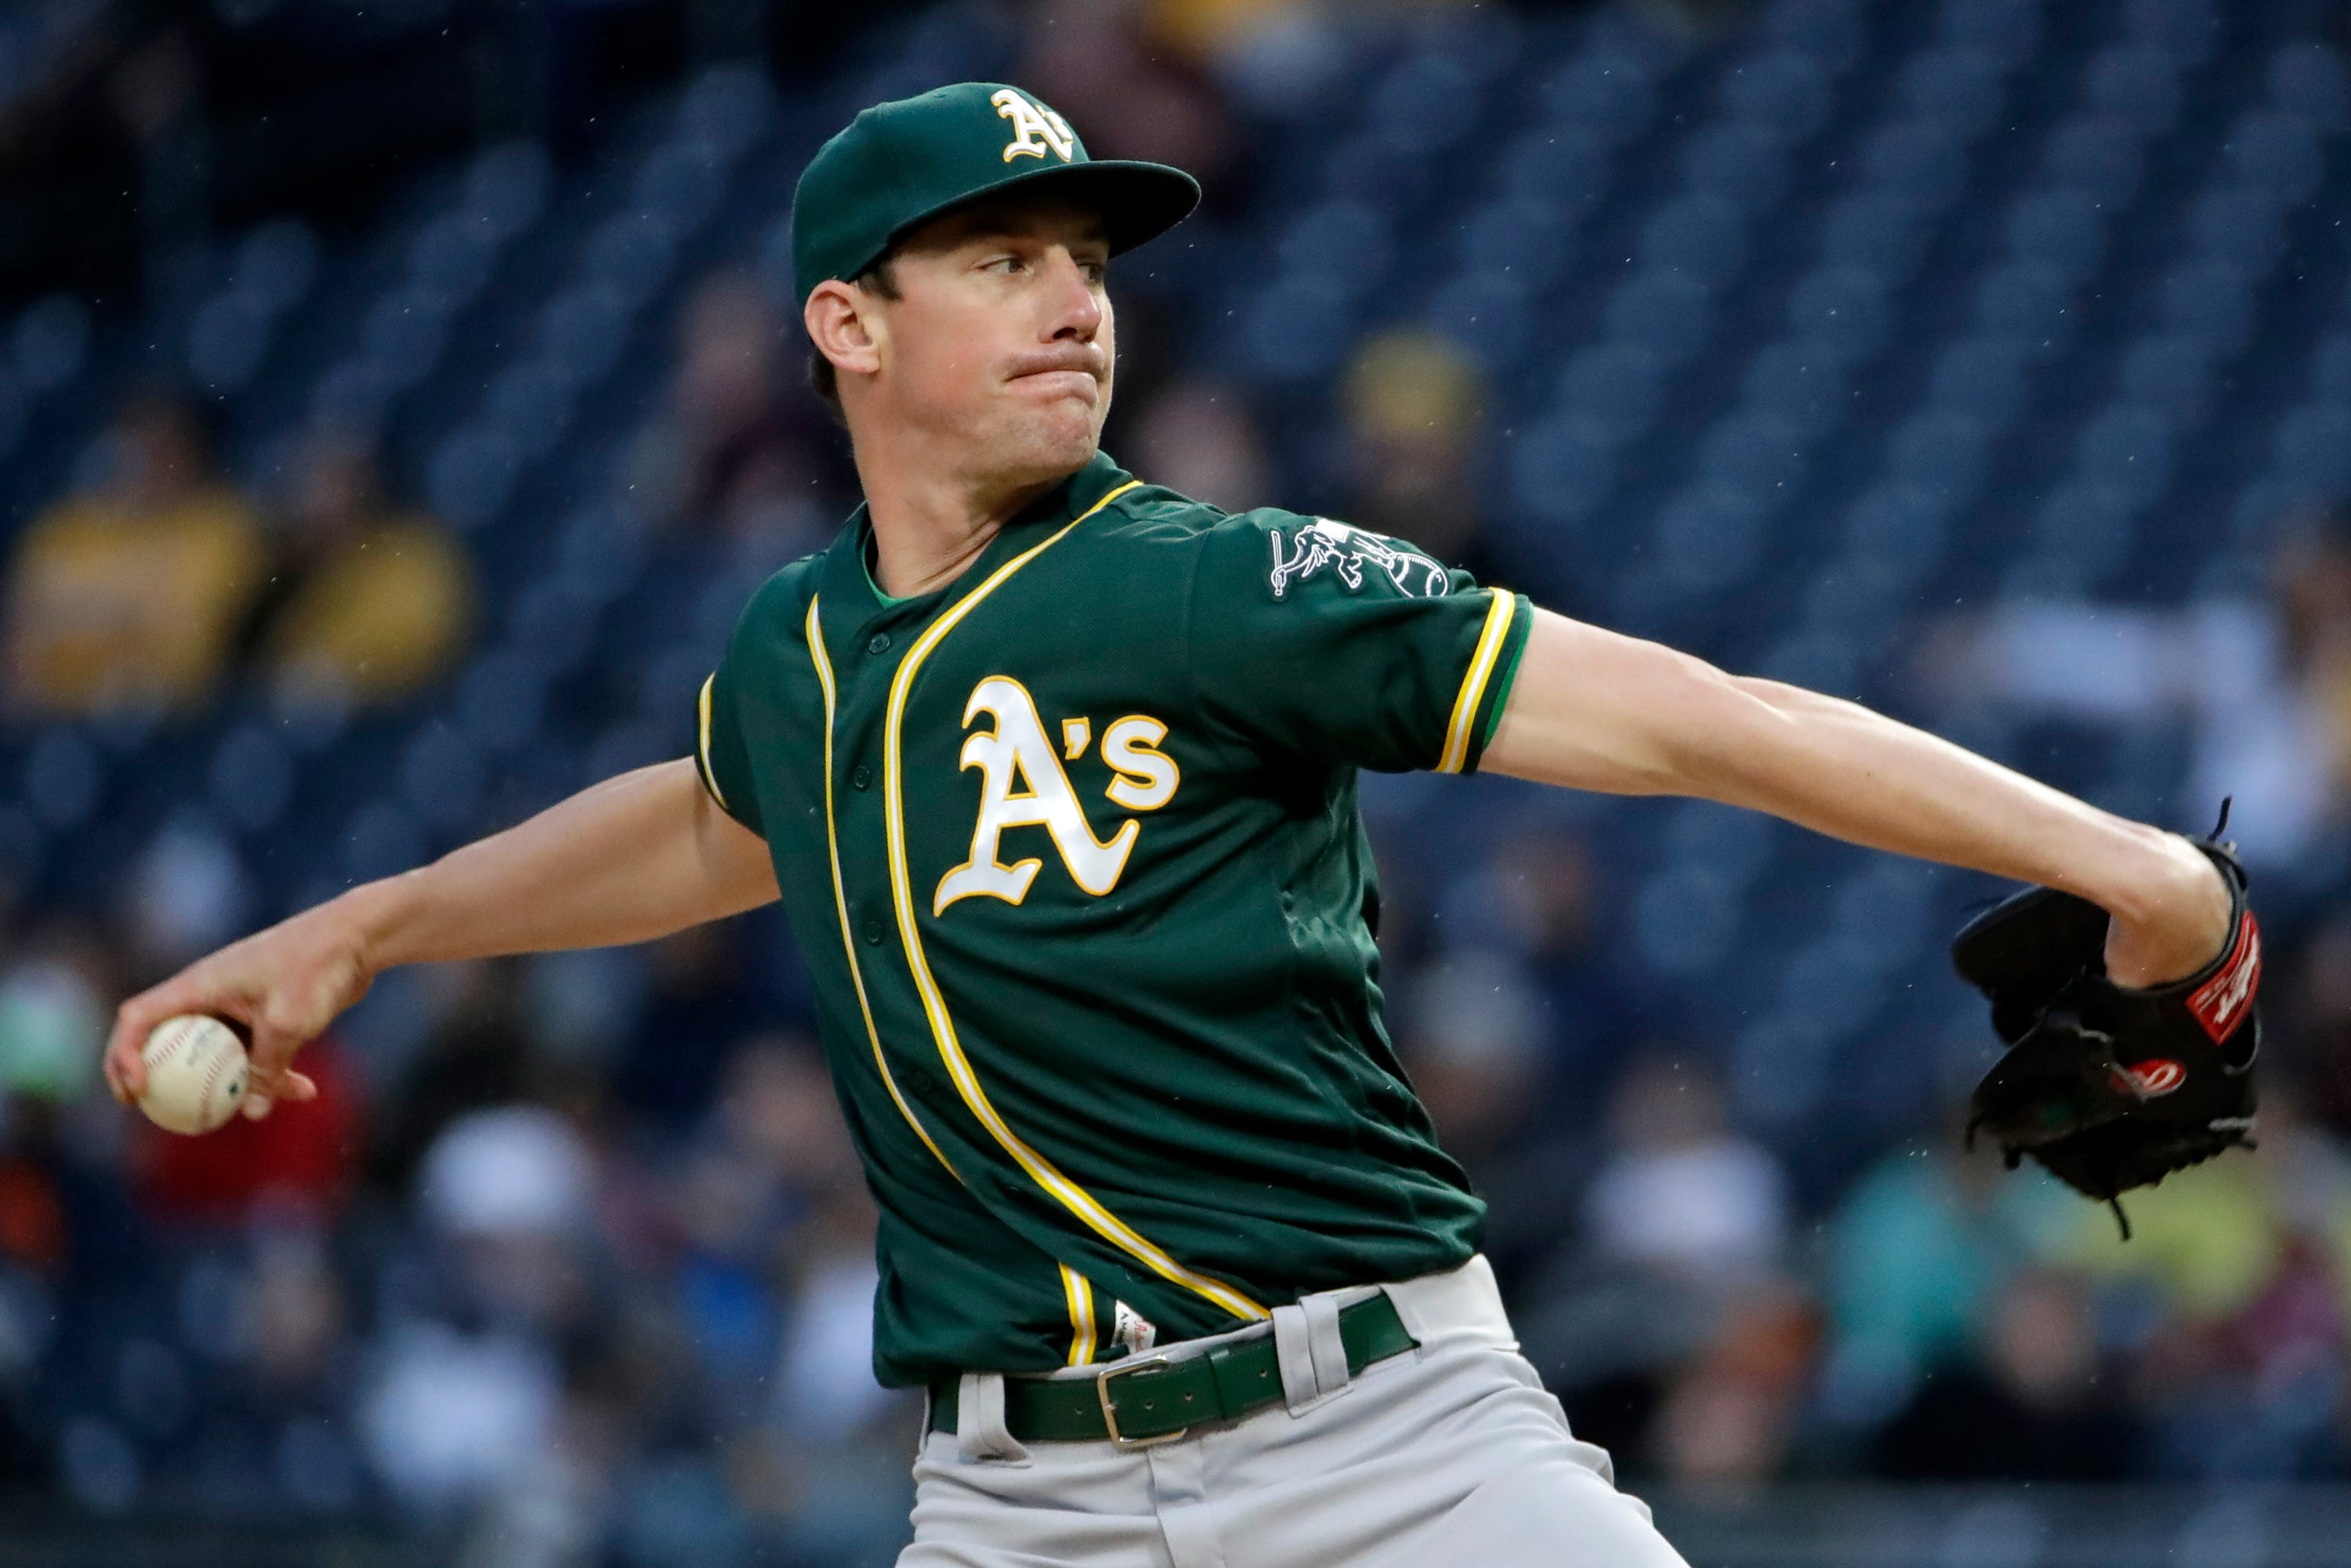 Newman's go-ahead triple rallies Pirates by A's 6-4